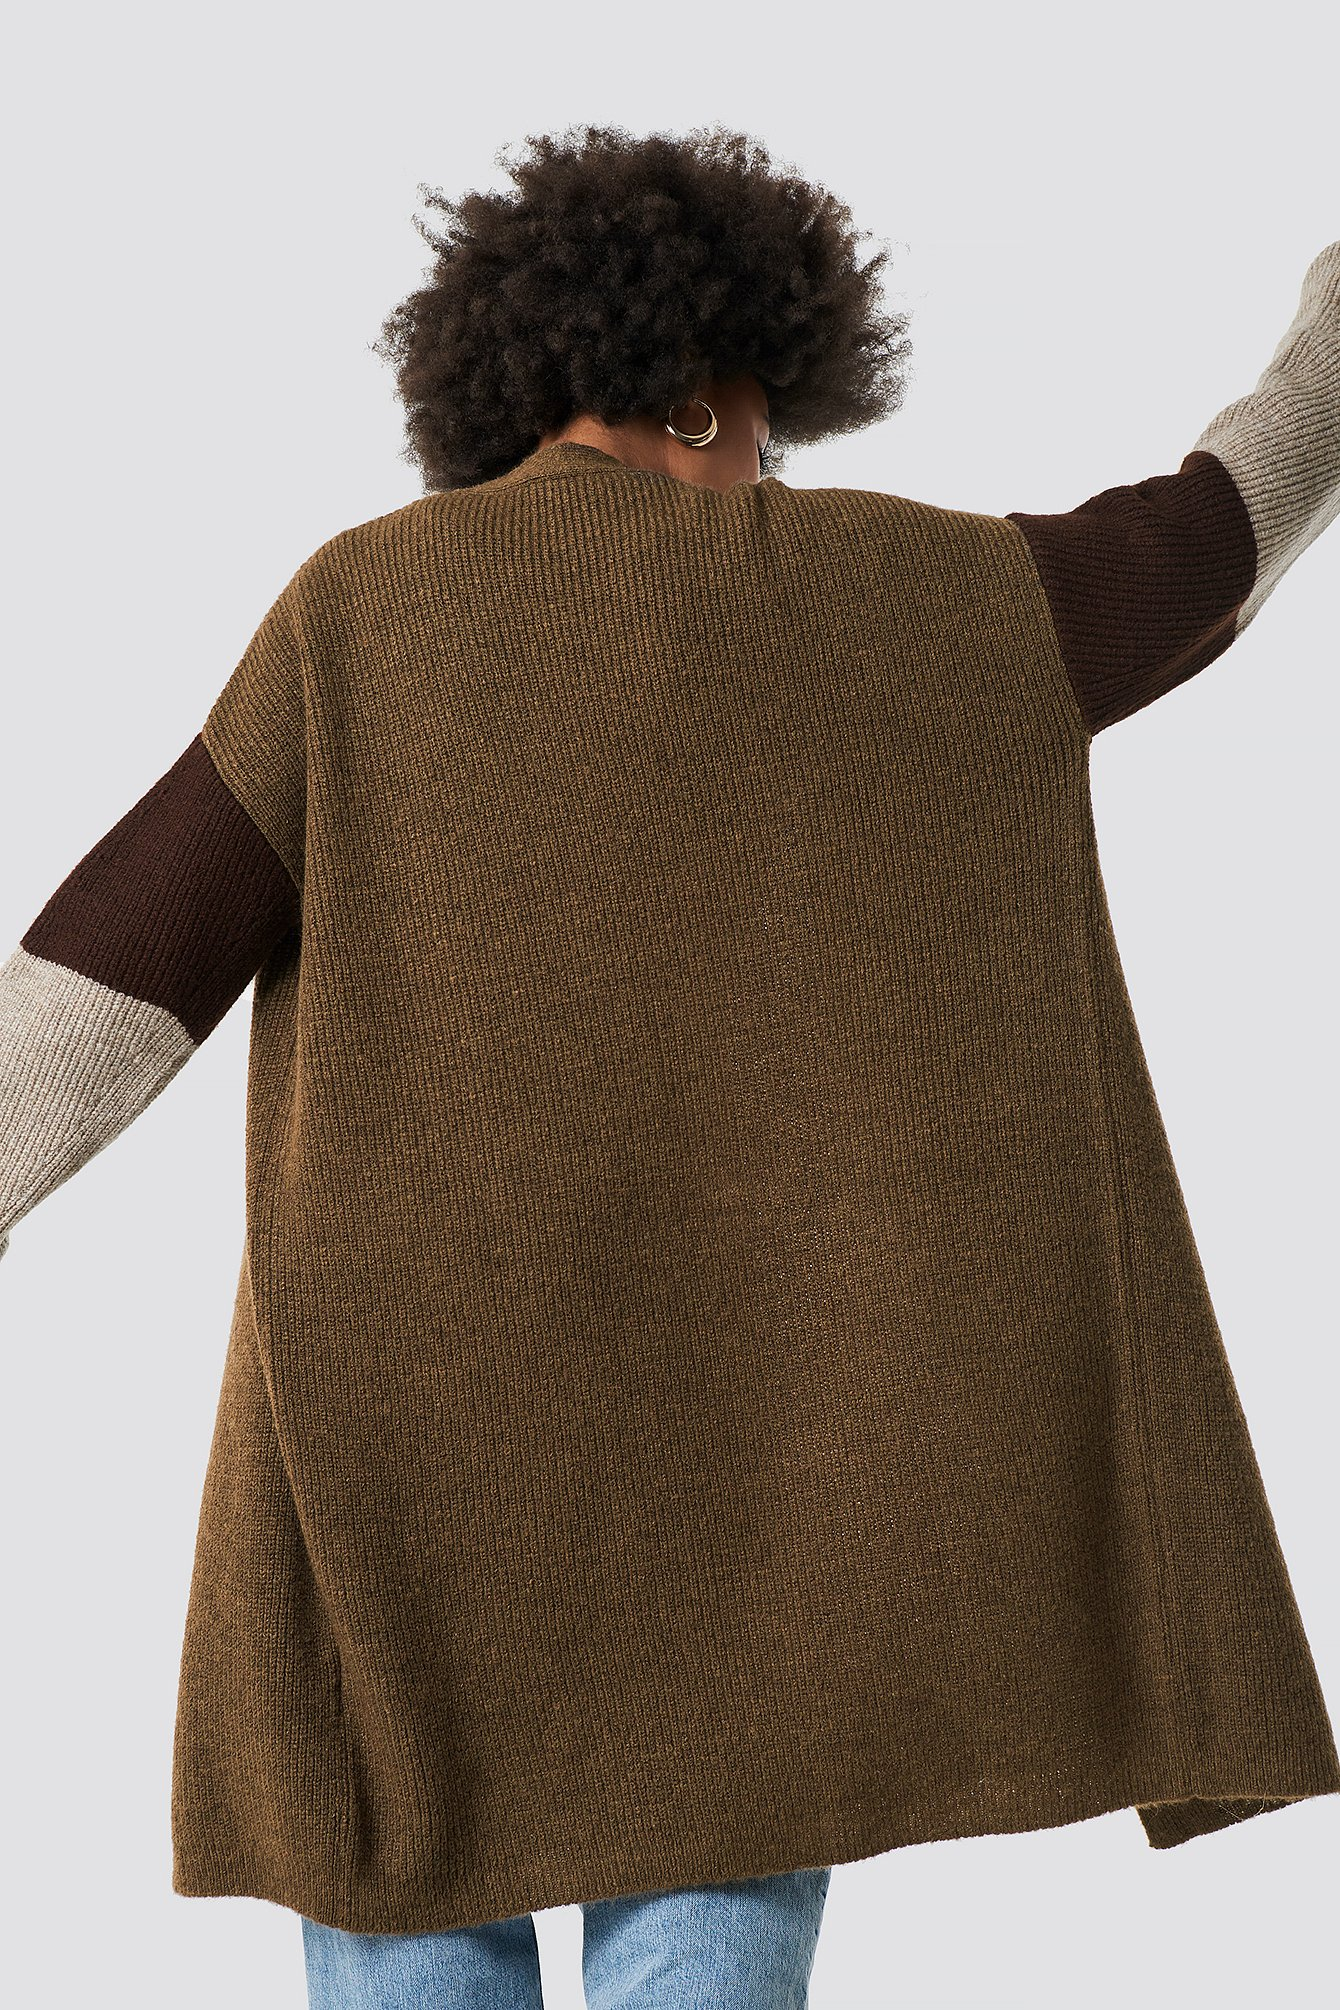 Beige Na Cardigan Blocked Knitted Color zAqPwxHp